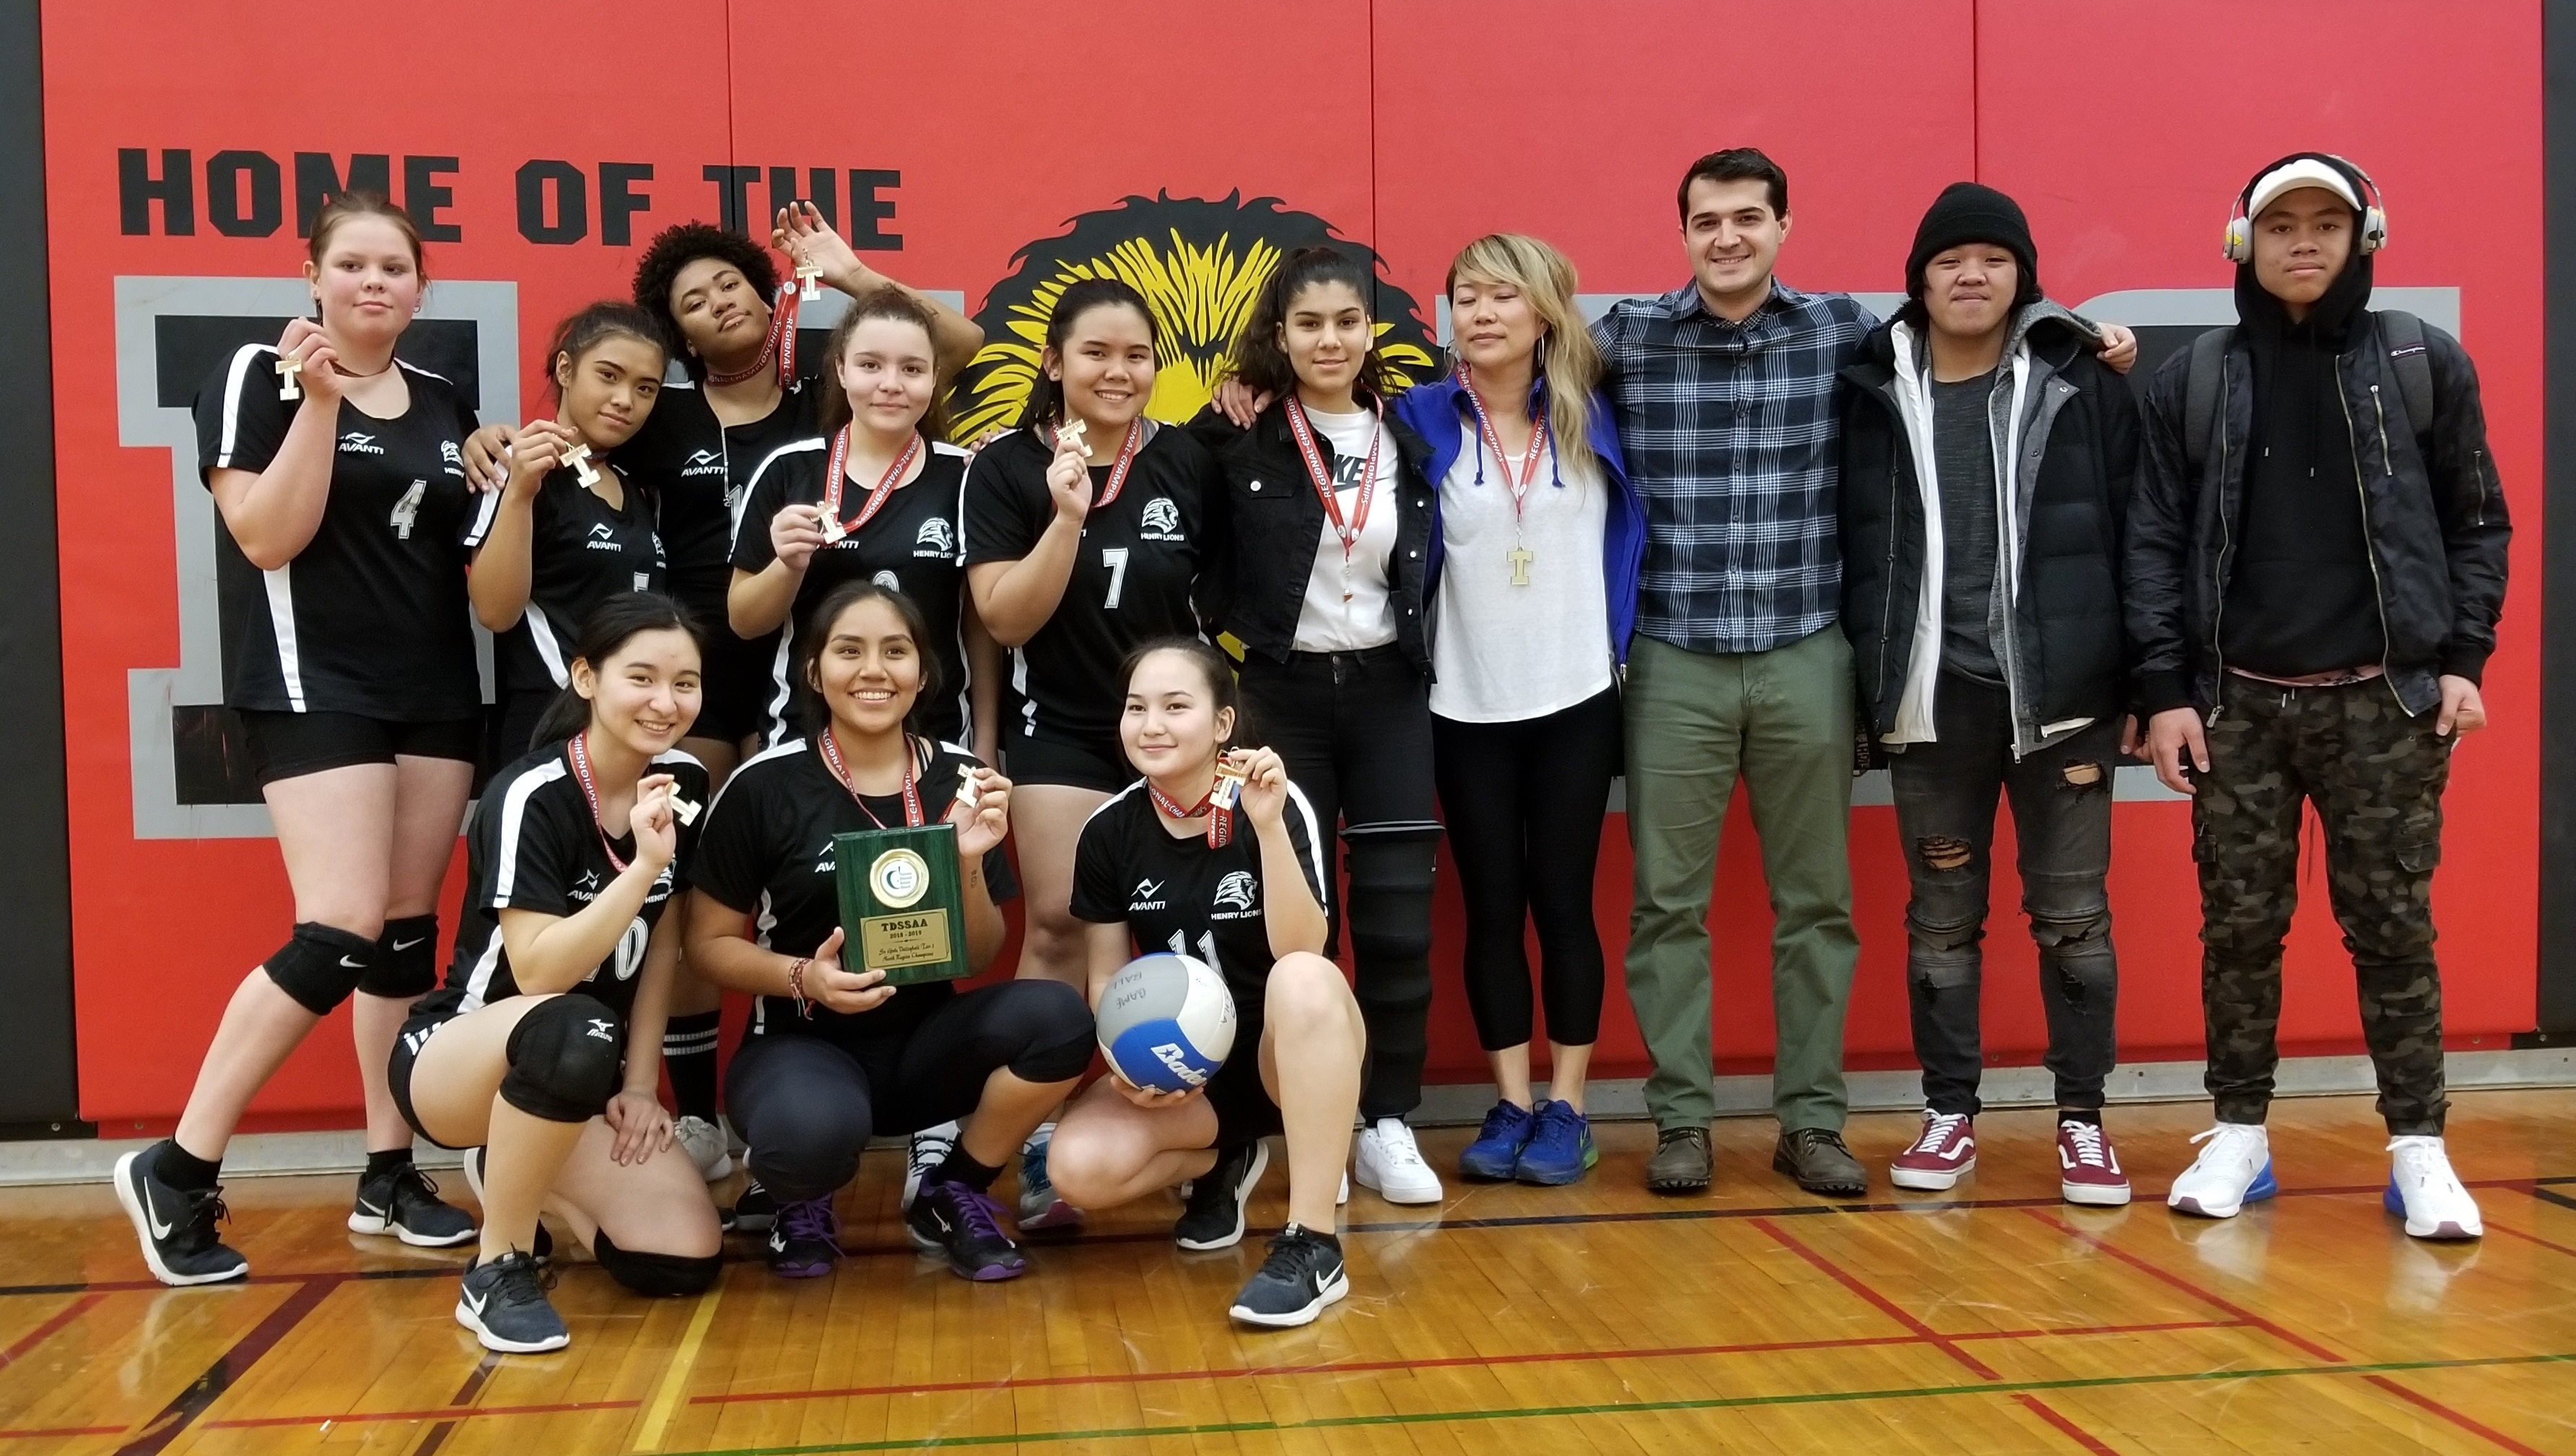 2018/2019 Tier 2 Volleyball Champions open gallery